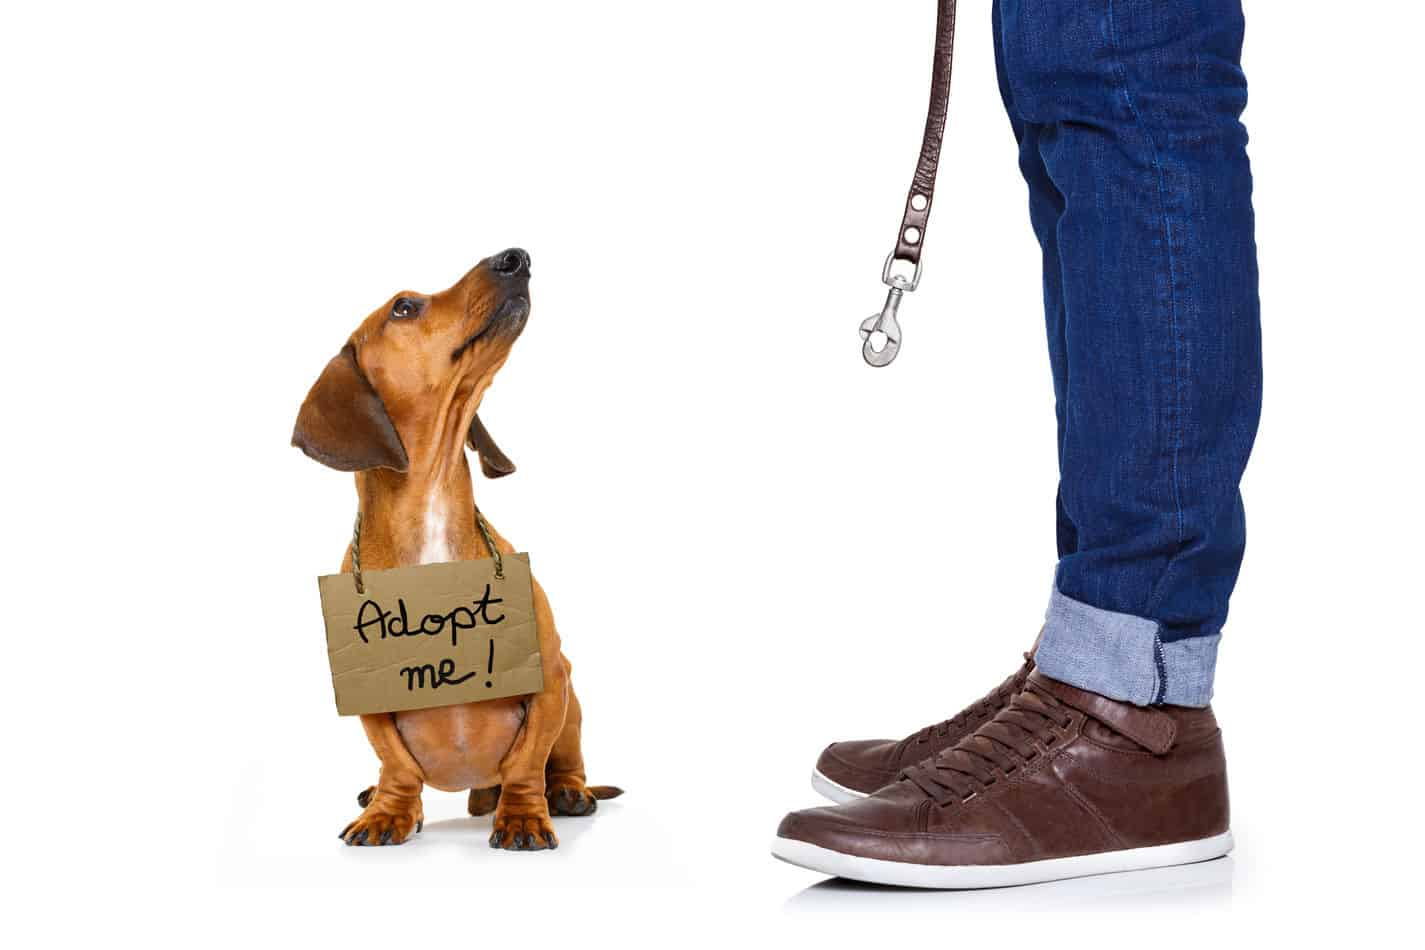 Dachshund Rescue Guide: How to Find One and What it Will Be Like